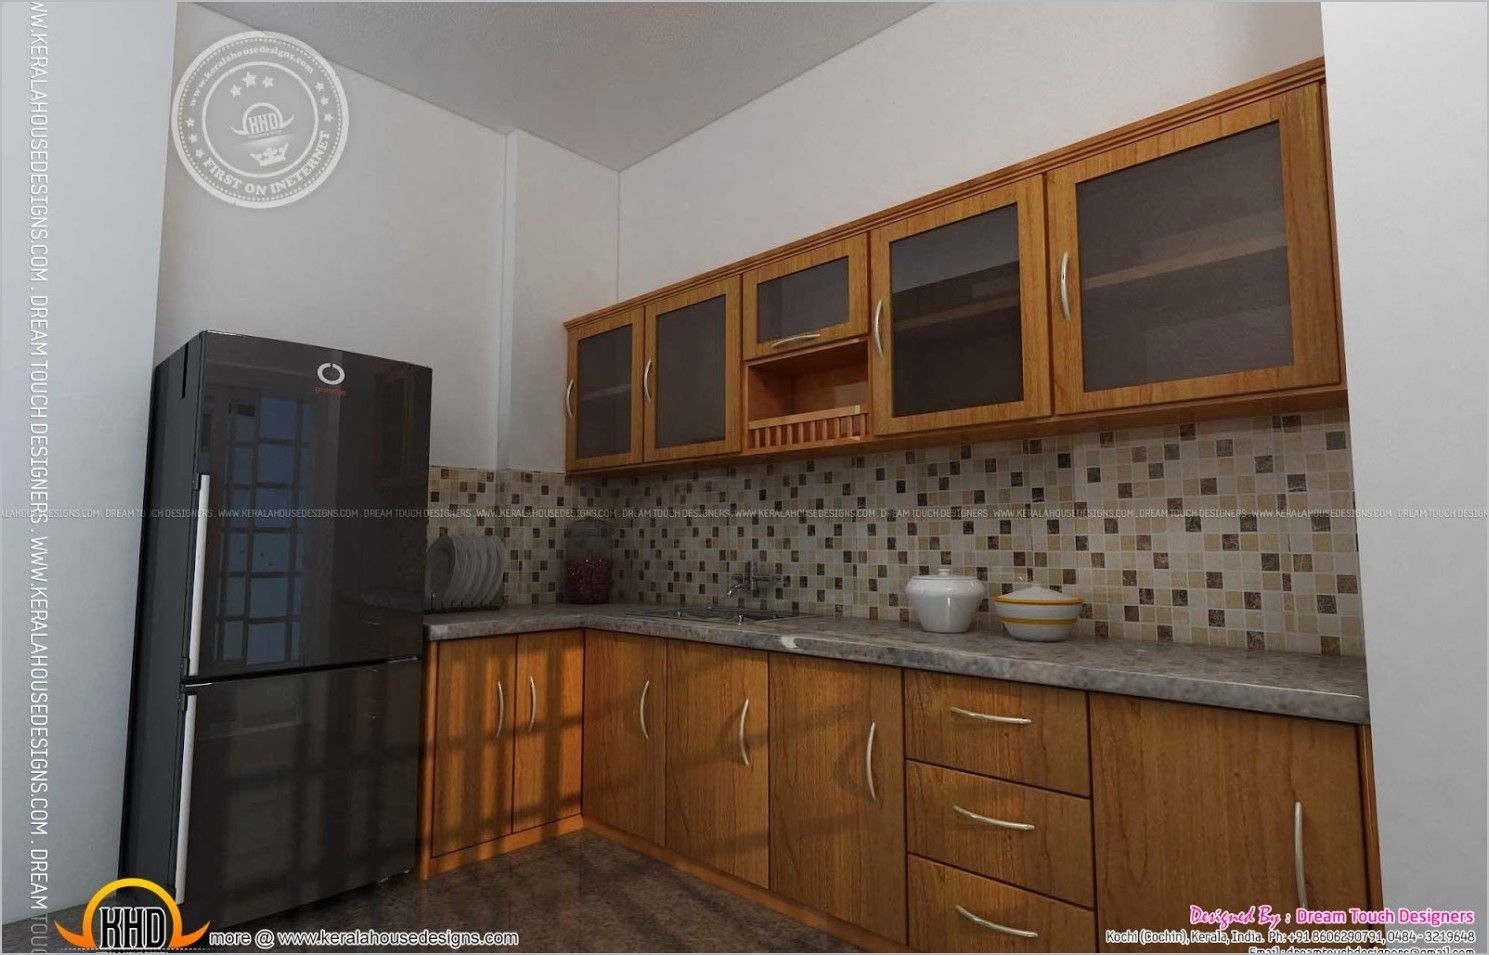 Kitchen design in kerala indian house 1489 955 for Simple kitchen designs for indian homes